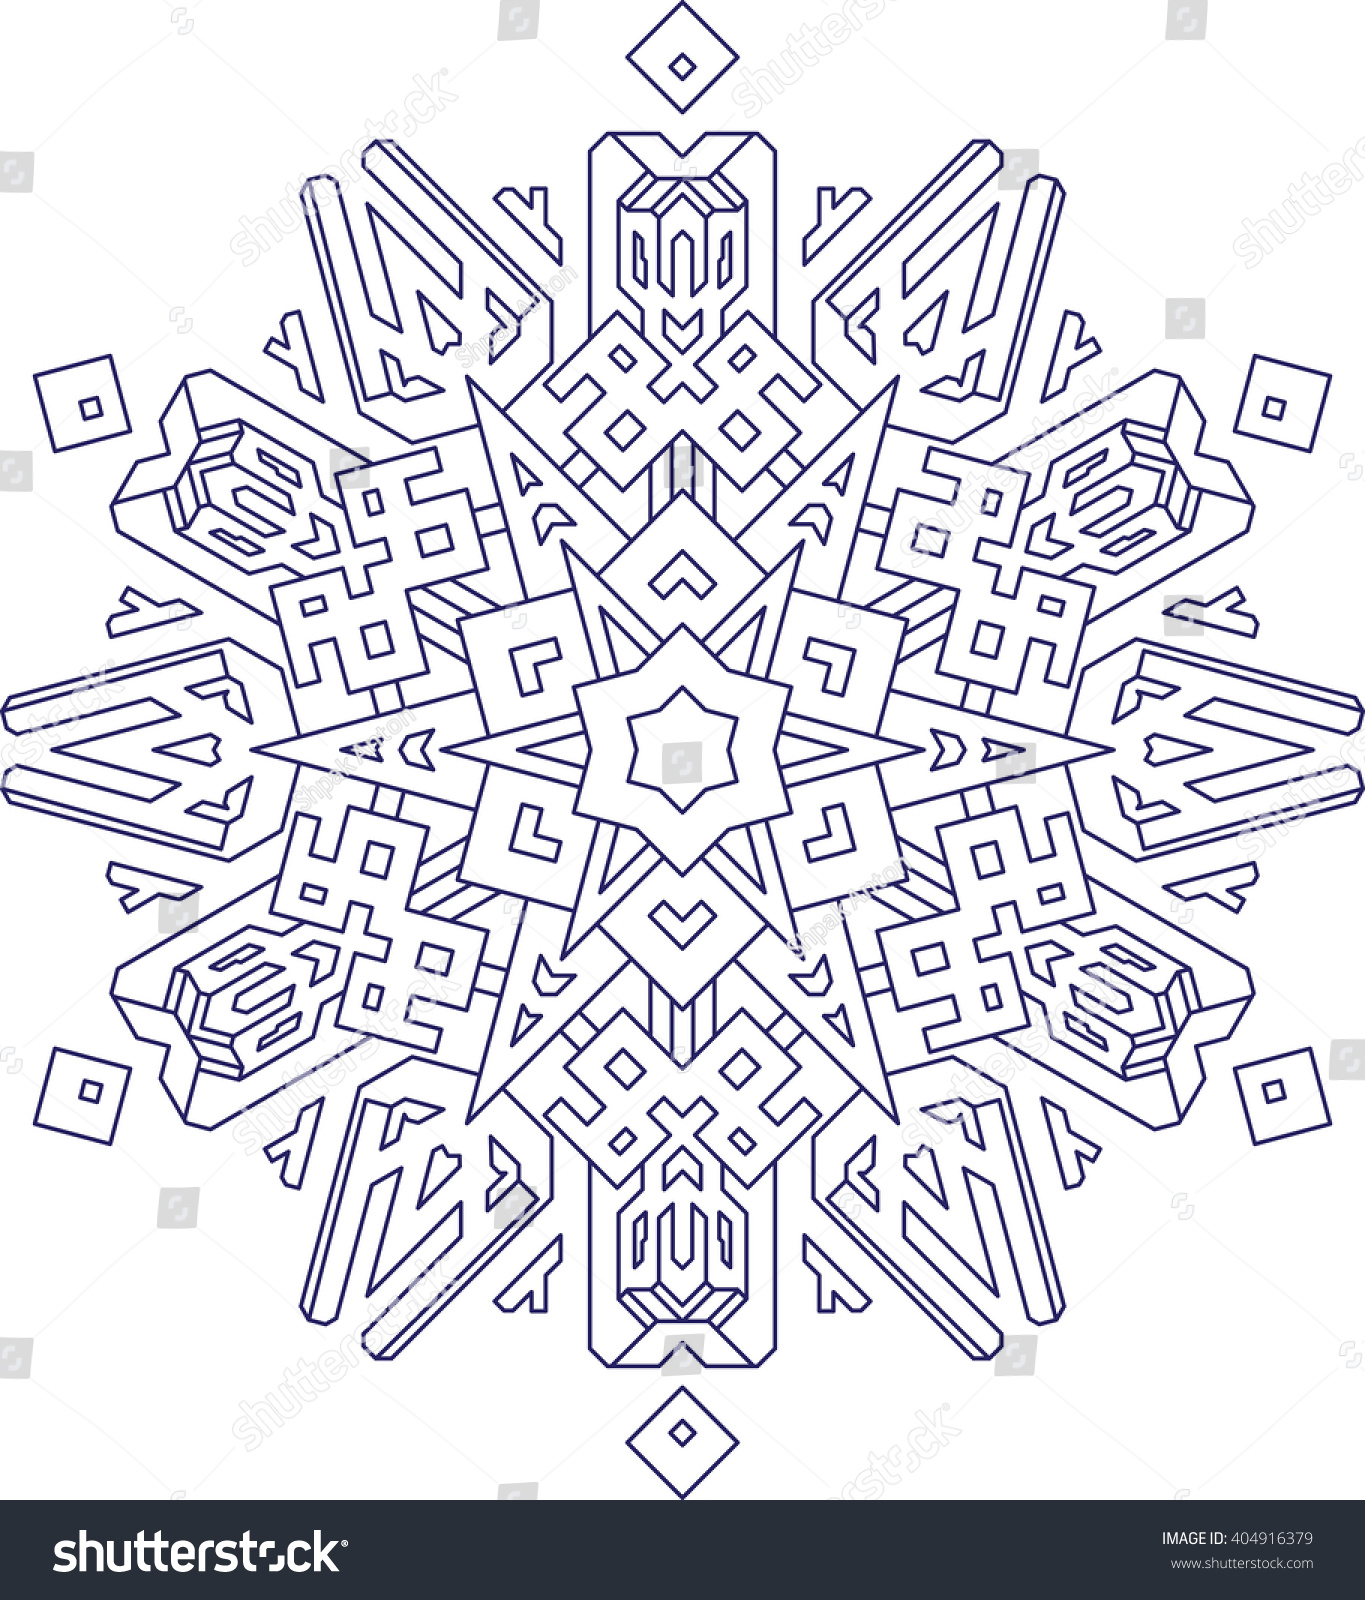 Coloring book outlines - Outlines Of Snowflake In Mono Line Style For Coloring Coloring Book Vector Geometric Pattern